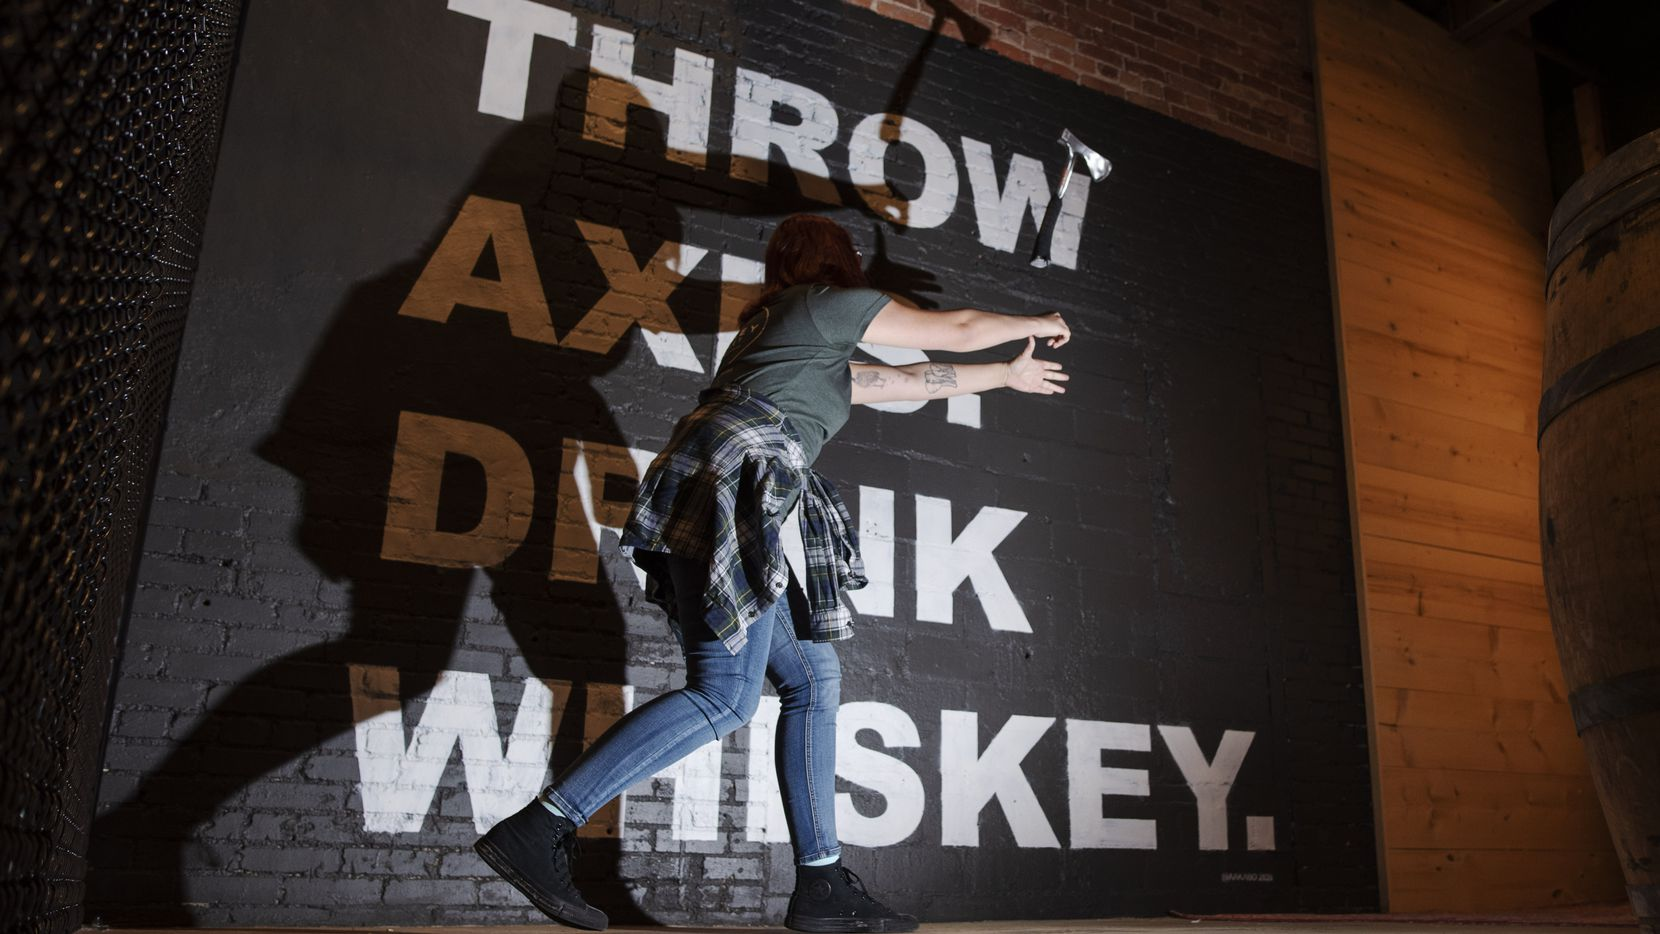 Elisa Grace, a staffer at Whiskey Hatchet, demonstrates her two-handed throwing technique at the new bar in Deep Ellum.